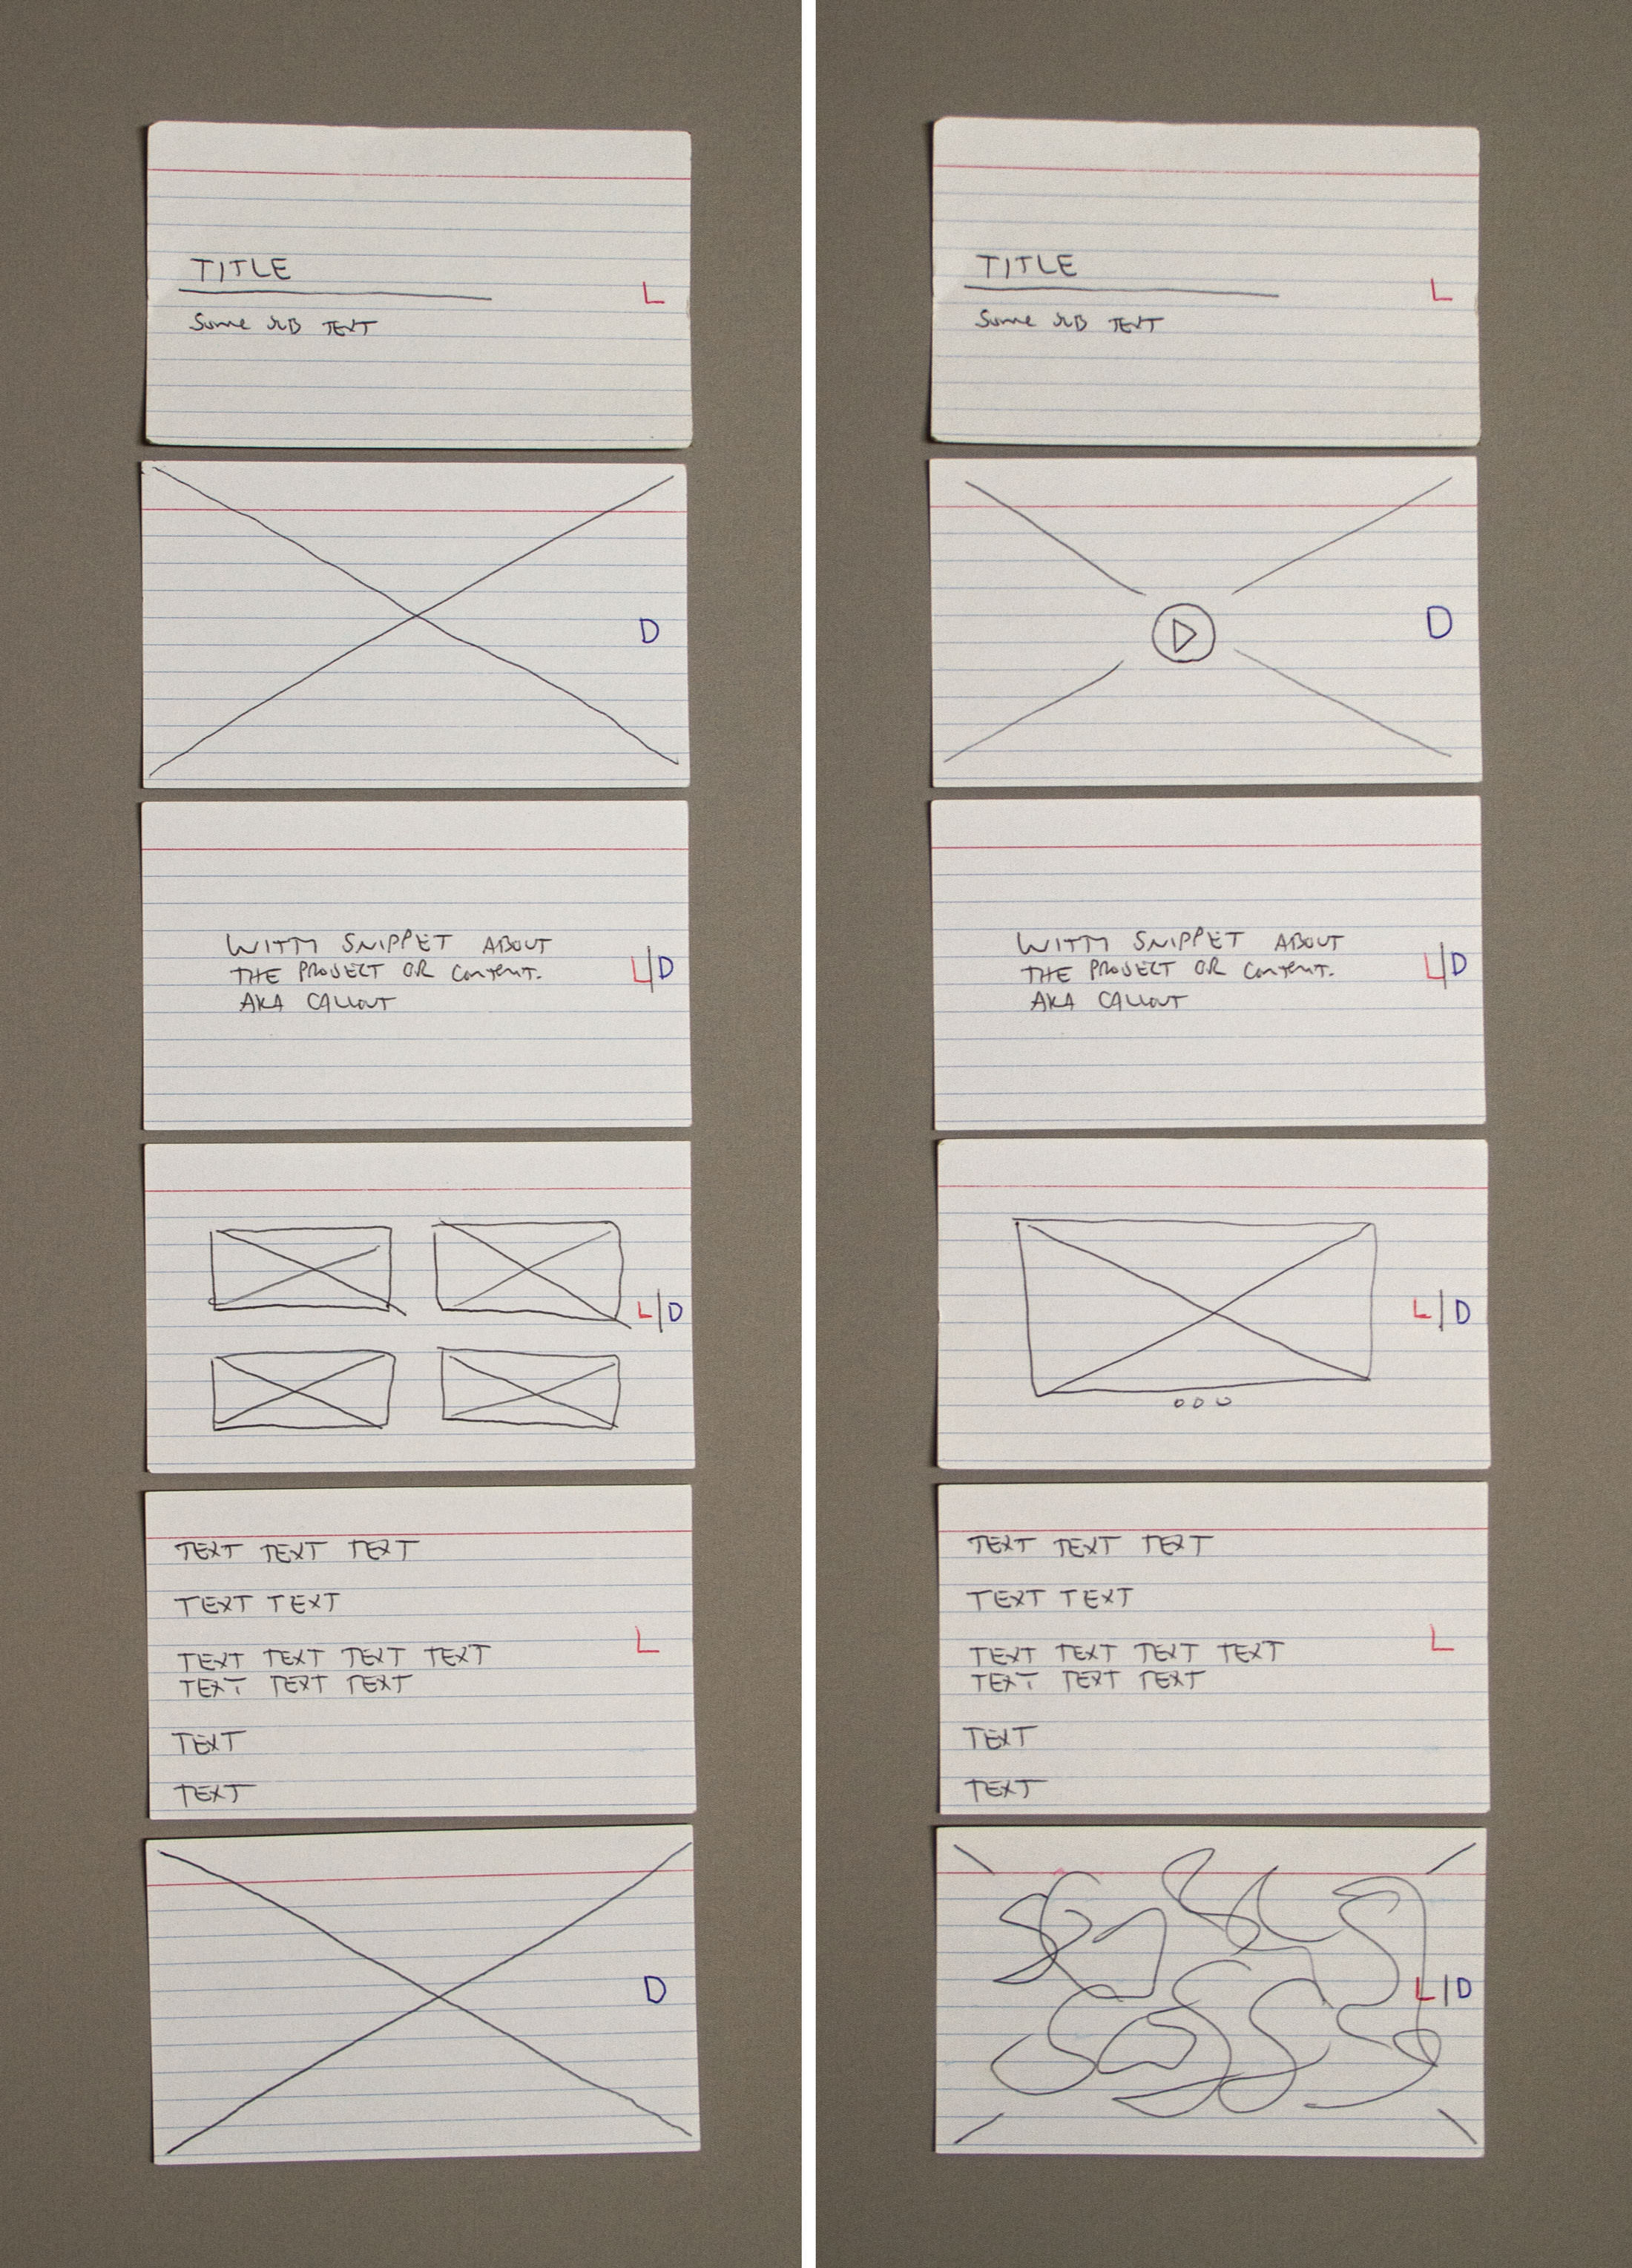 The index card version of the Wireframe Diagram used in the making of sethakkerman.com.